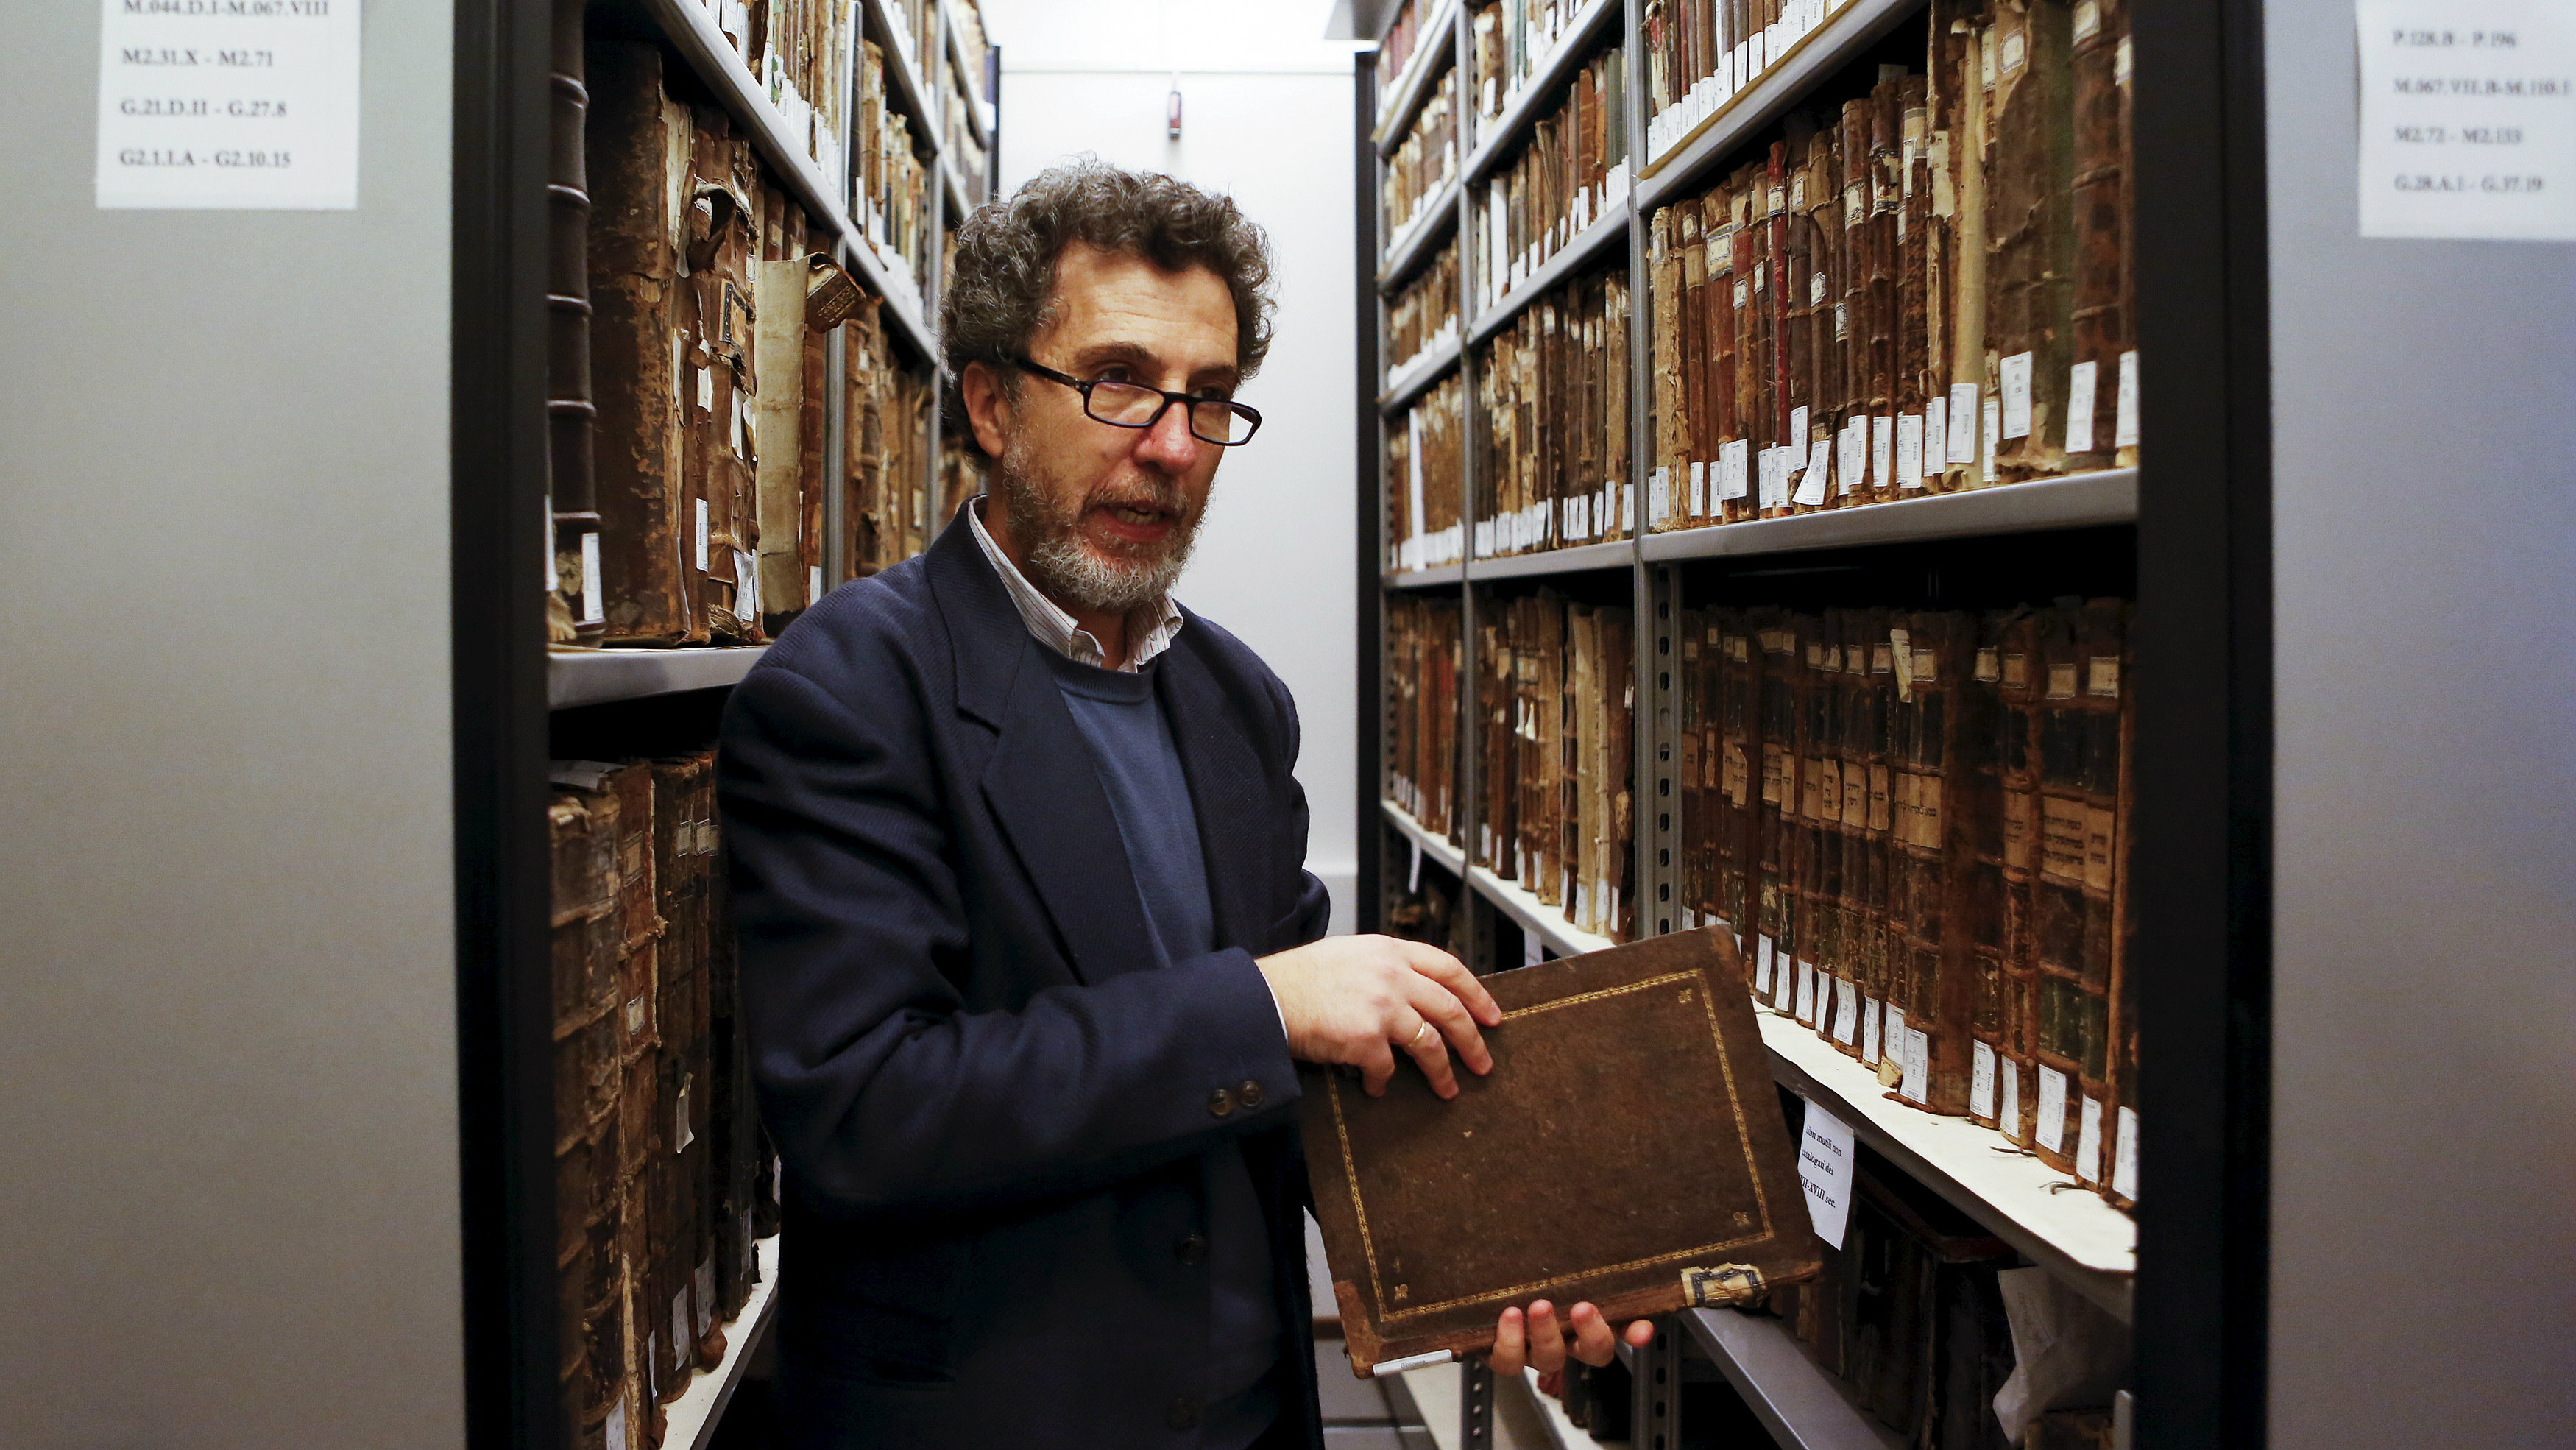 """Professor Gadi Luzzatto Voghera, director of the Jewish Library in the Venice ghetto, looks at manuscripts about Jewish history in the library's vaults, northern Italy, March 22, 2016. The Jews of the world's first ghetto, marking its 500th anniversary, advise patience and integration to Europe as it struggles with the challenge of mass migration. In March 1516 the leader of the Venetian Republic and his senate decreed to confine the city's Jews on an island. Venice gave the world the word """"ghetto"""", with its infamous connotations through the centuries. REUTERS/Alessandro Bianchi SEARCH """"VENICE GHETTO"""" FOR THIS STORY. SEARCH """"THE WIDER IMAGE"""" FOR ALL STORIES"""